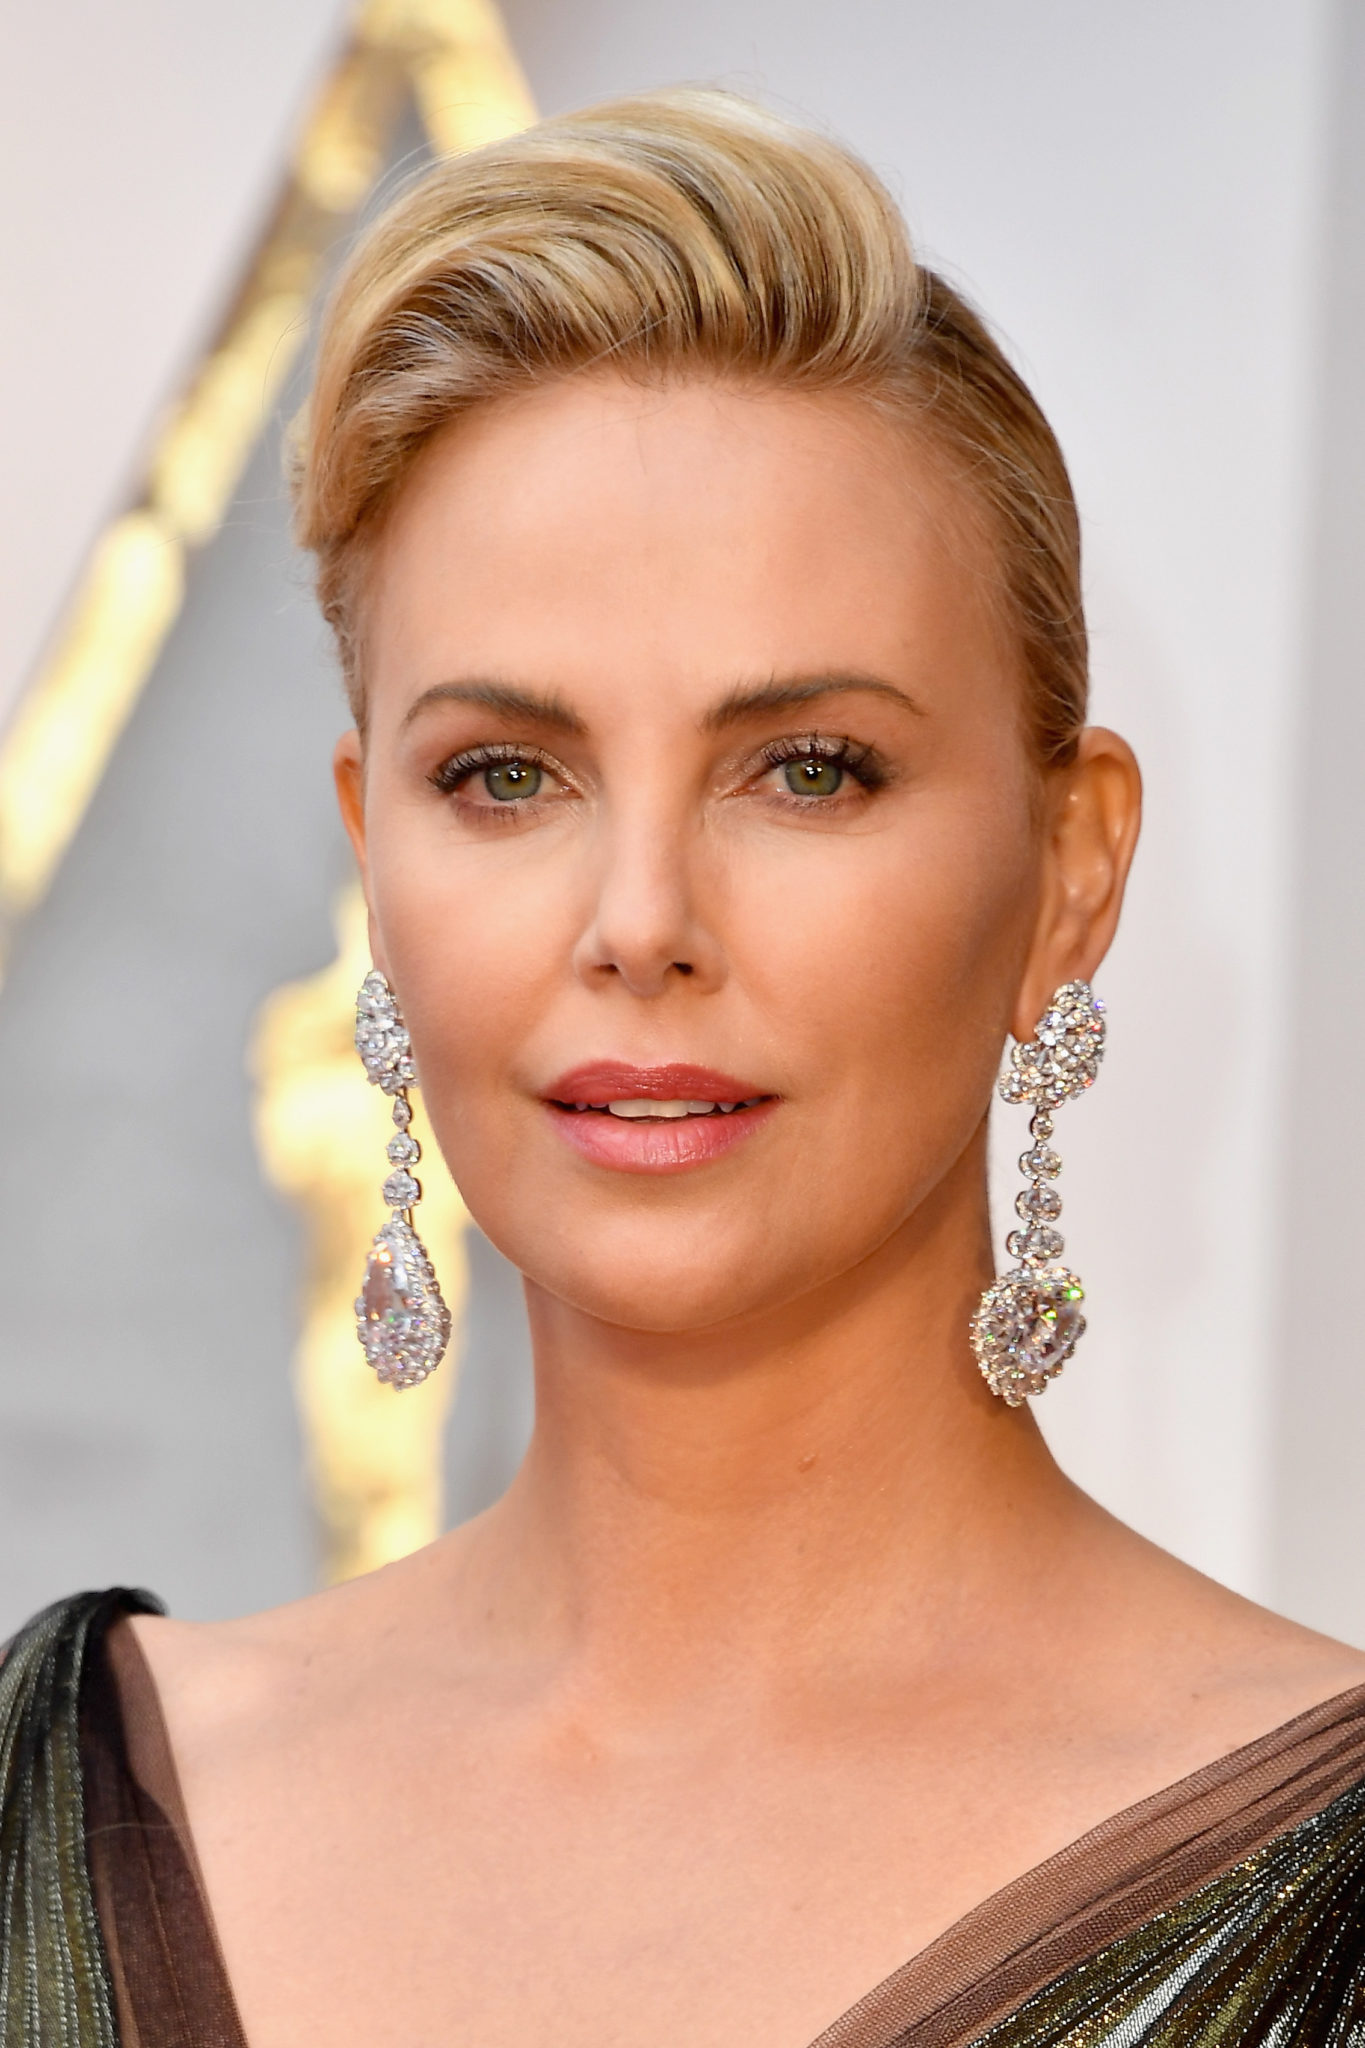 HOLLYWOOD, CA - FEBRUARY 26: Actor Charlize Theron attends the 89th Annual Academy Awards at Hollywood & Highland Center on February 26, 2017 in Hollywood, California. (Photo by Steve Granitz/WireImage)